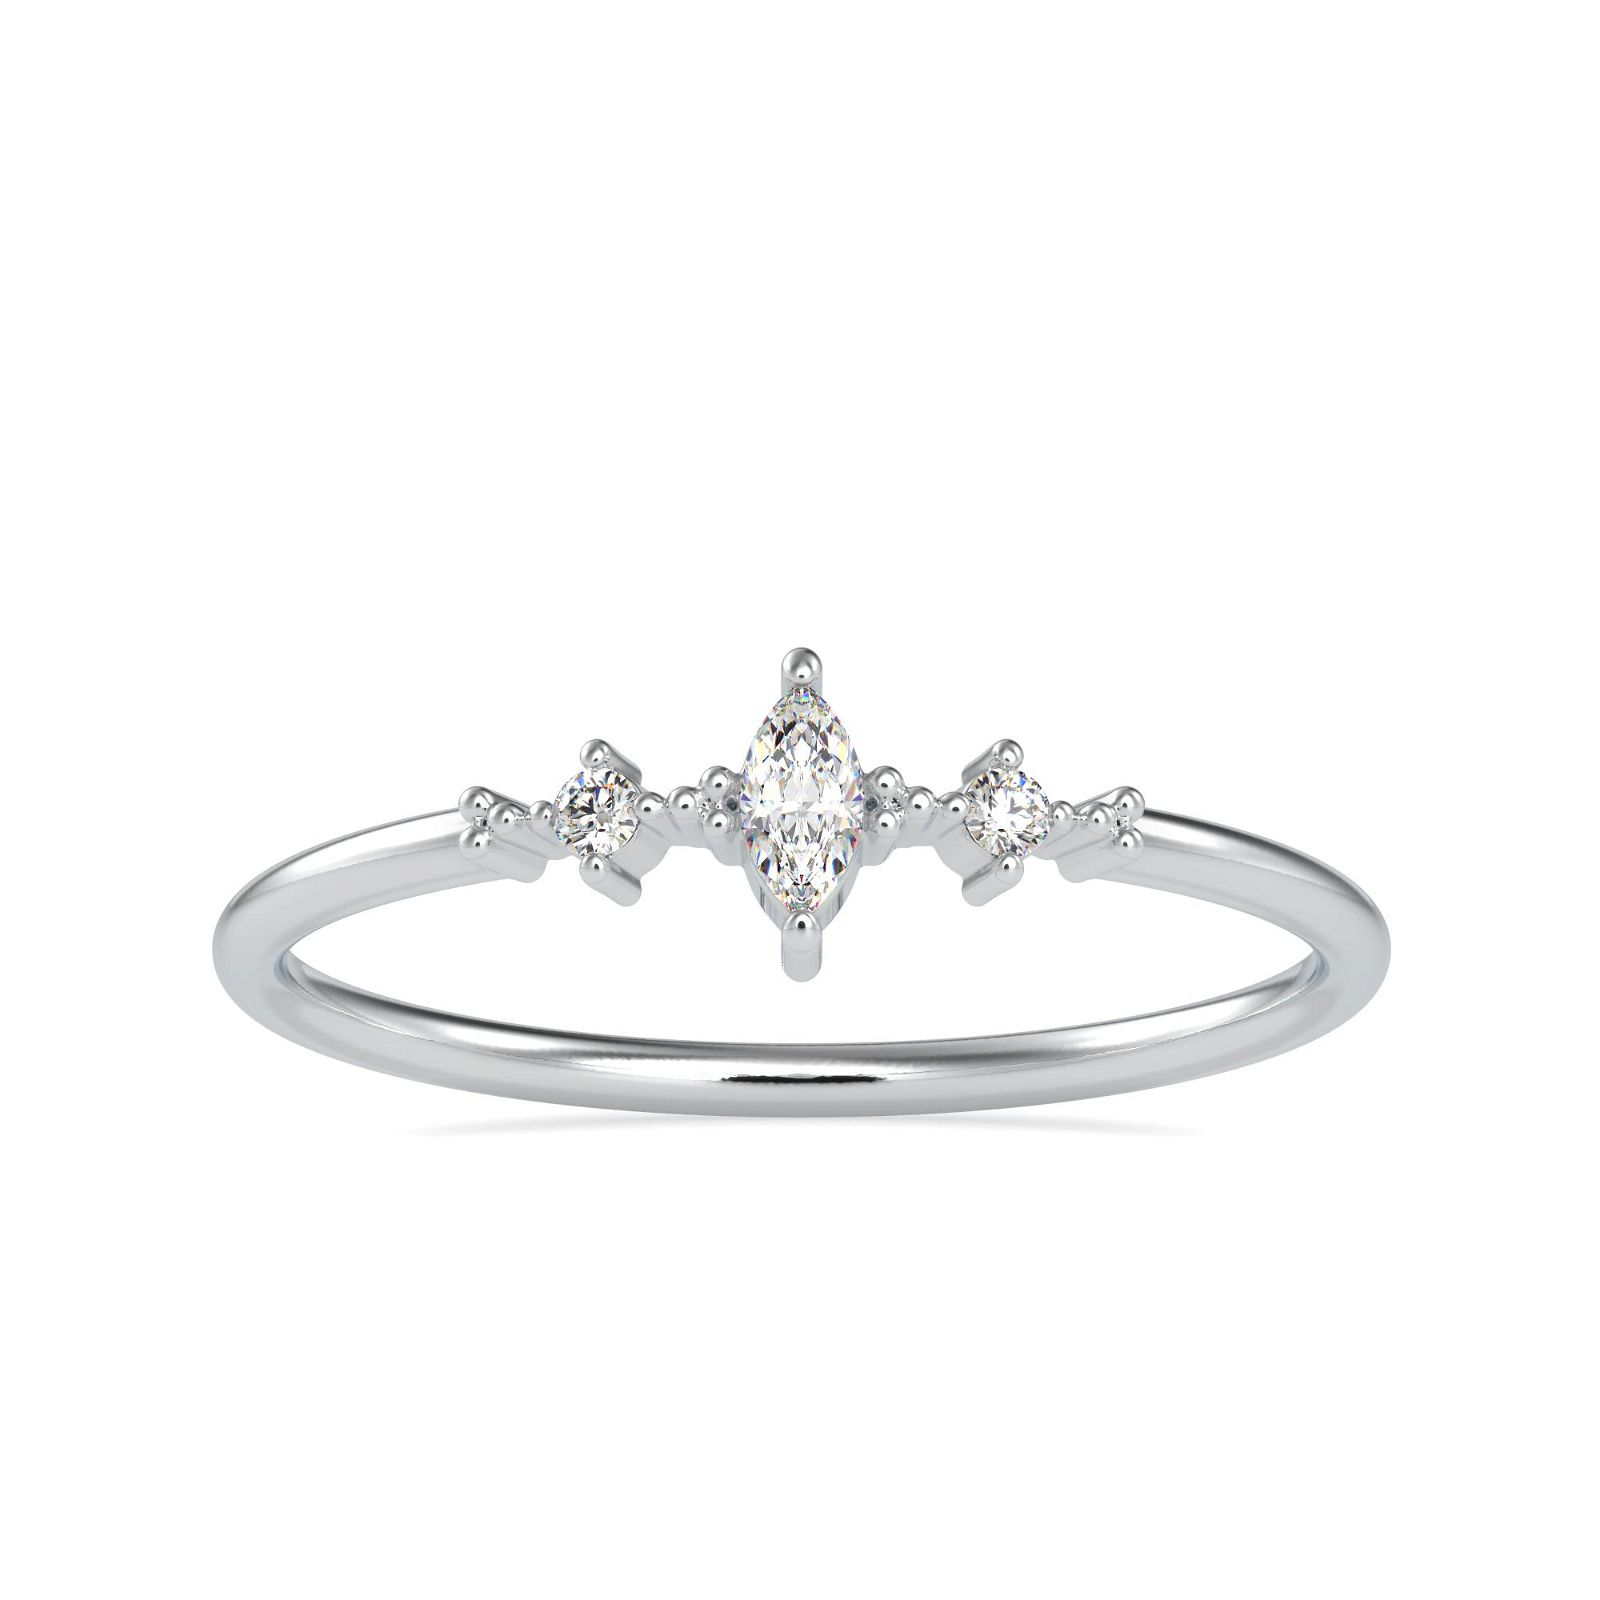 0.075CT Natural Diamond 14K White Gold Ring